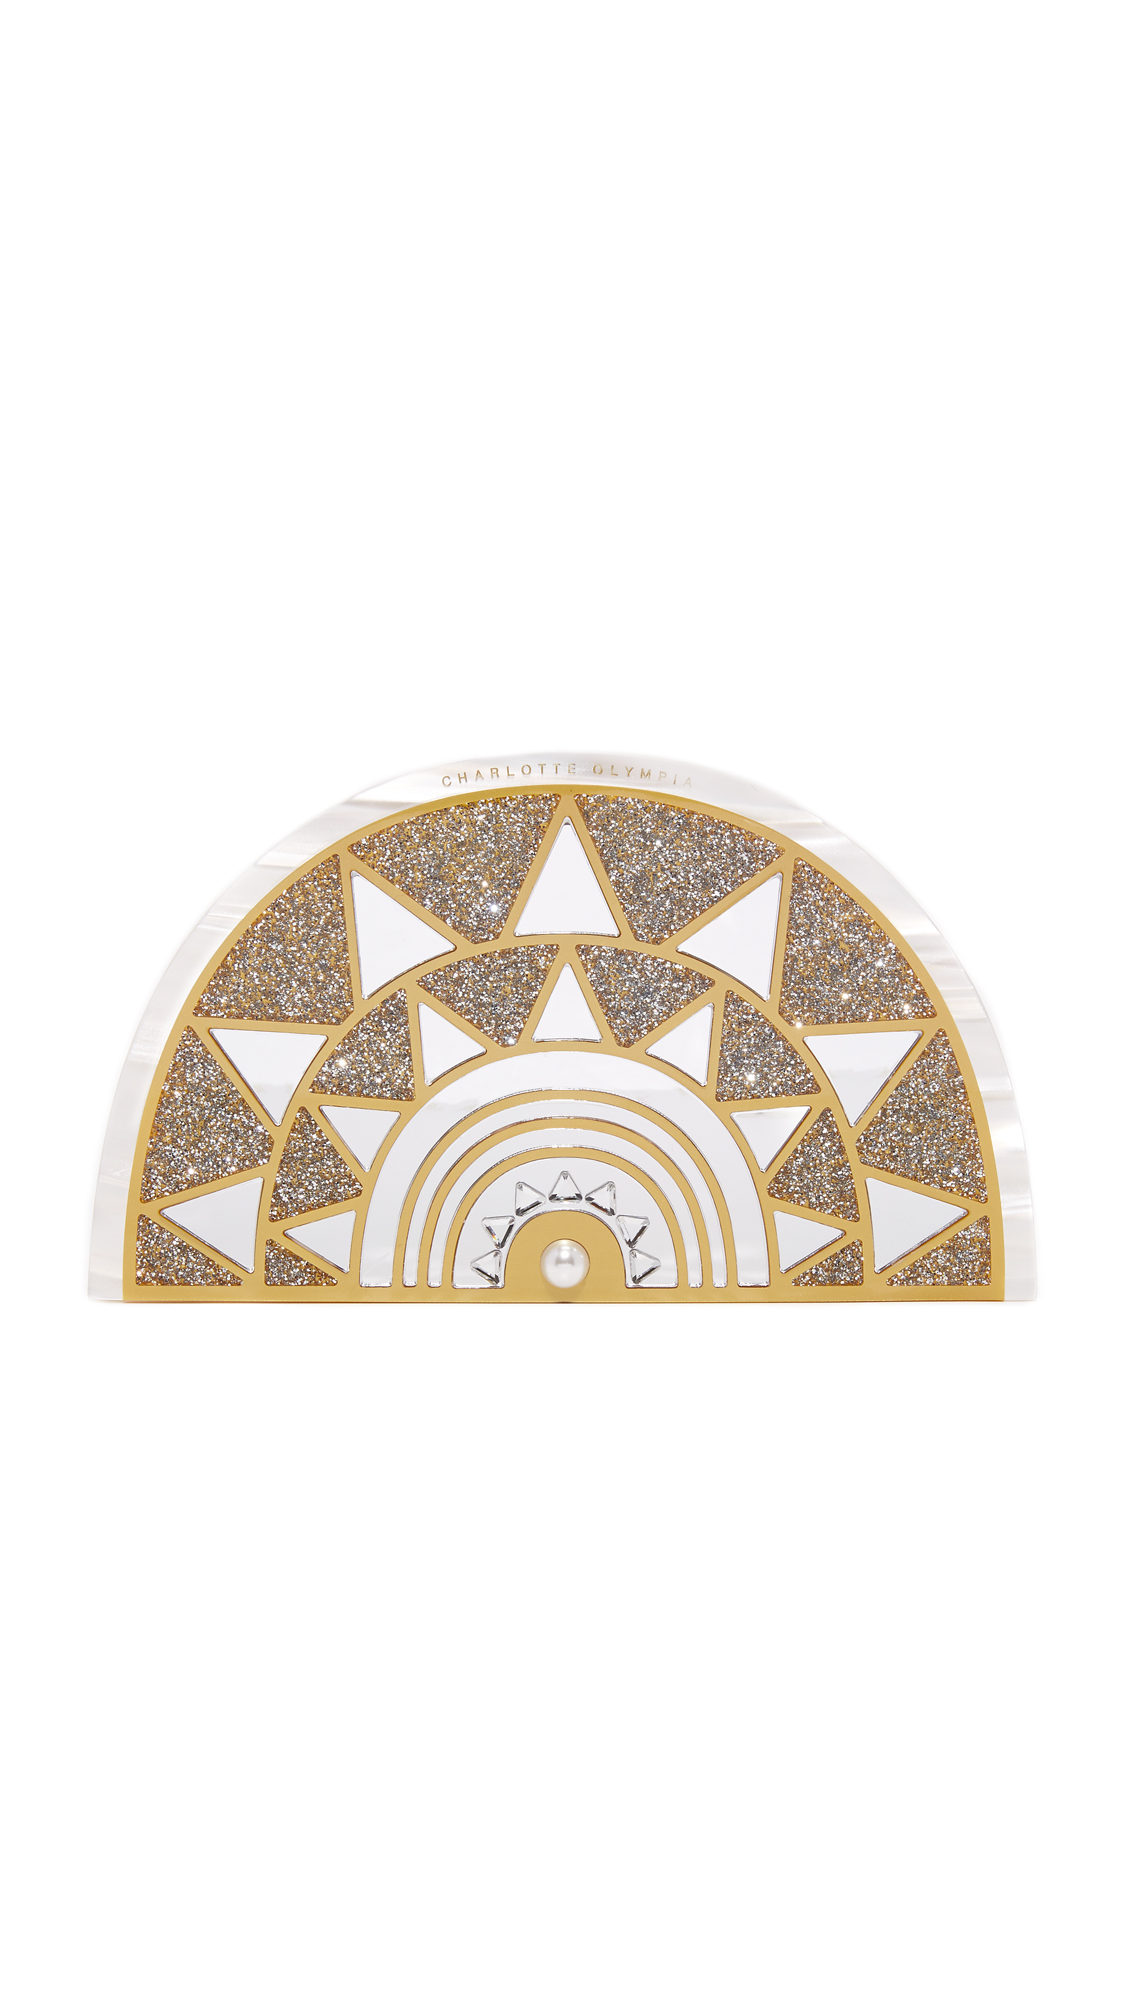 Angular mirrors and glitter infused panels form a striking mosaic on the front of this Charlotte Olympia hardshell clutch. An imitation pearl accents the base. Magnetic closure. Unlined interior. Dust bag included. Fabric: Acrylic. Weight: 11oz / 0.31